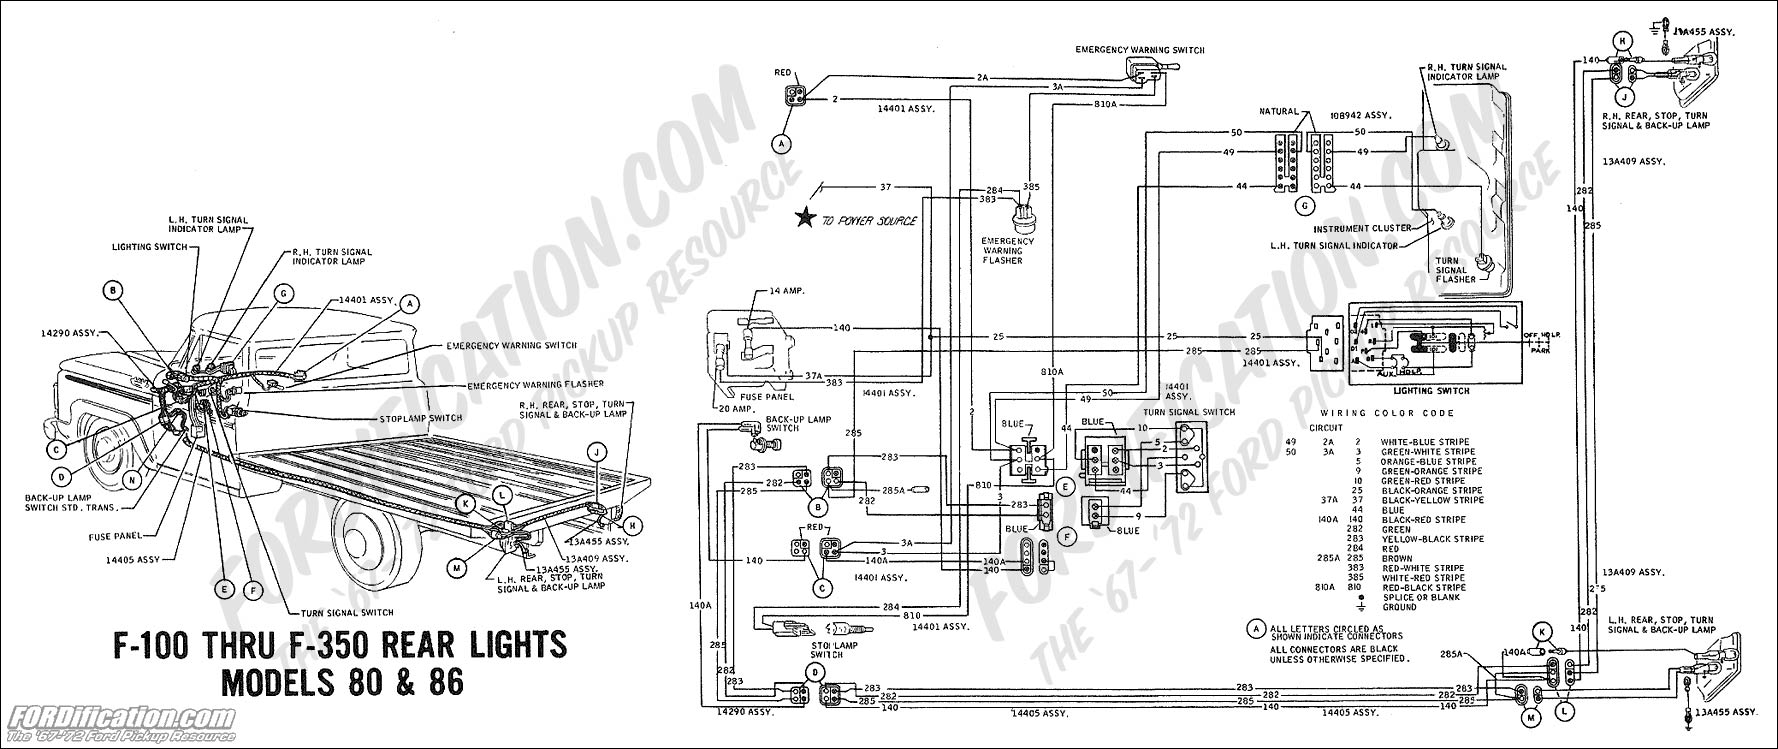 hight resolution of 1990 ford l9000 wiring diagram wiring library ford l9000 stake body 1988 ford l9000 starter wiring